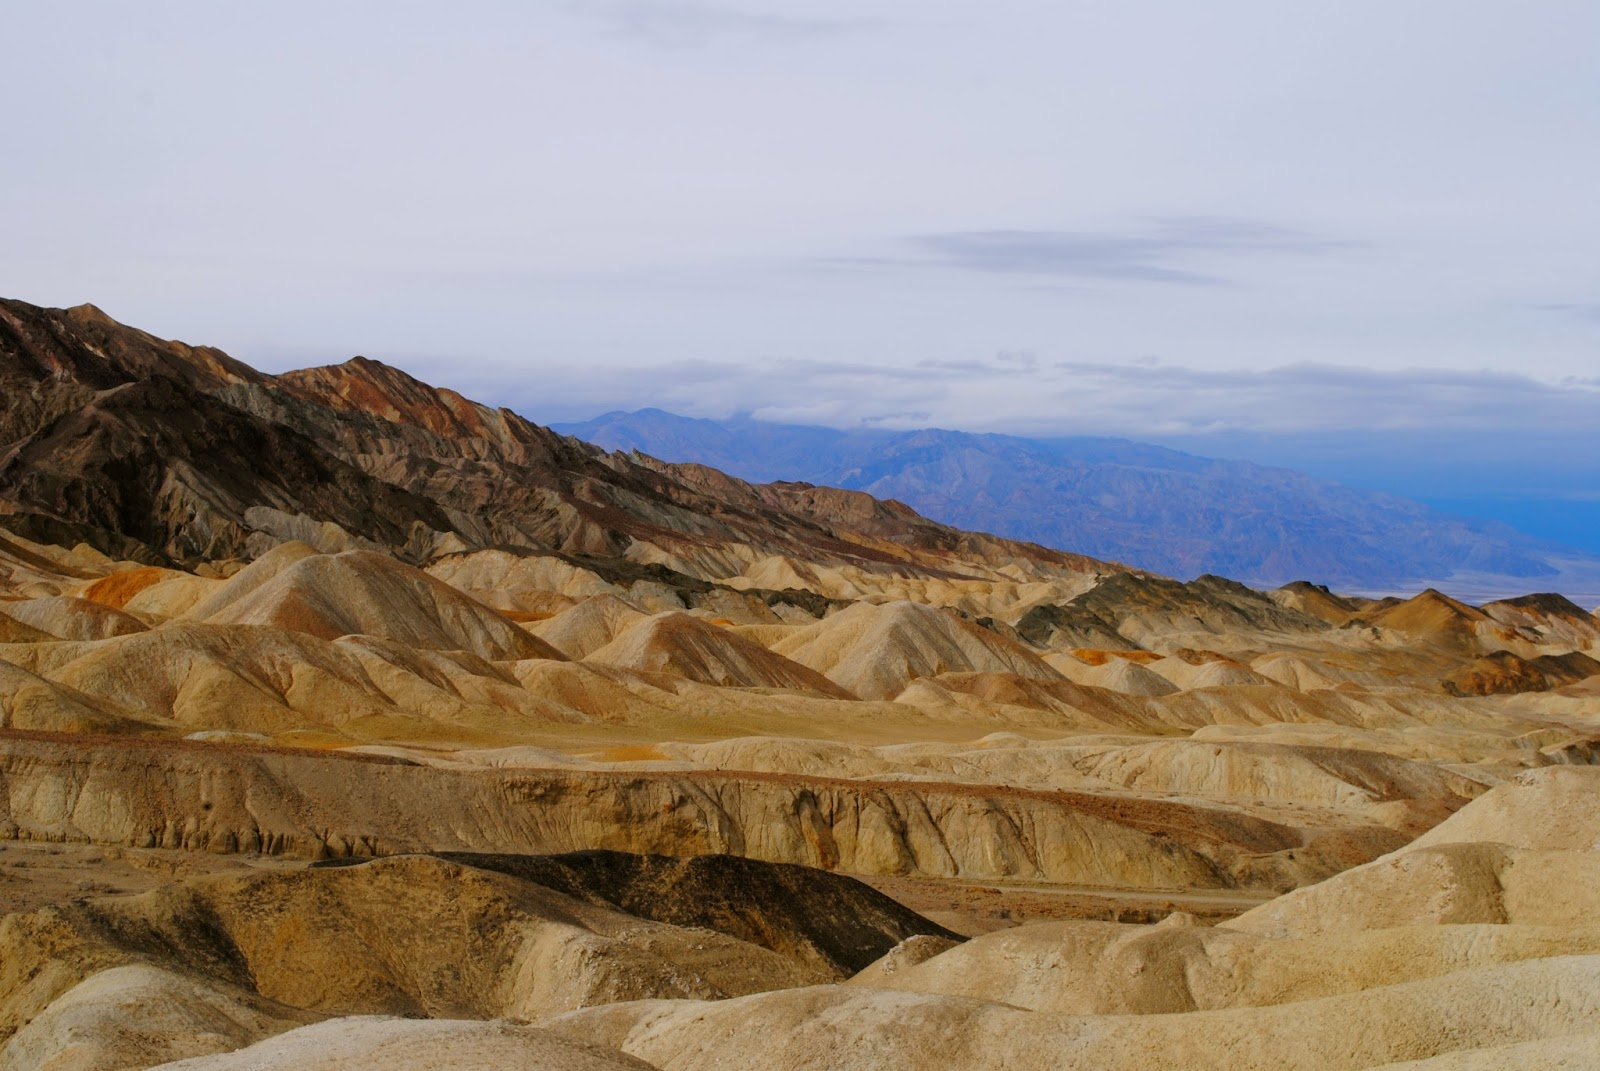 Visiting Death Valley National Park on a day trip from Las Vegas